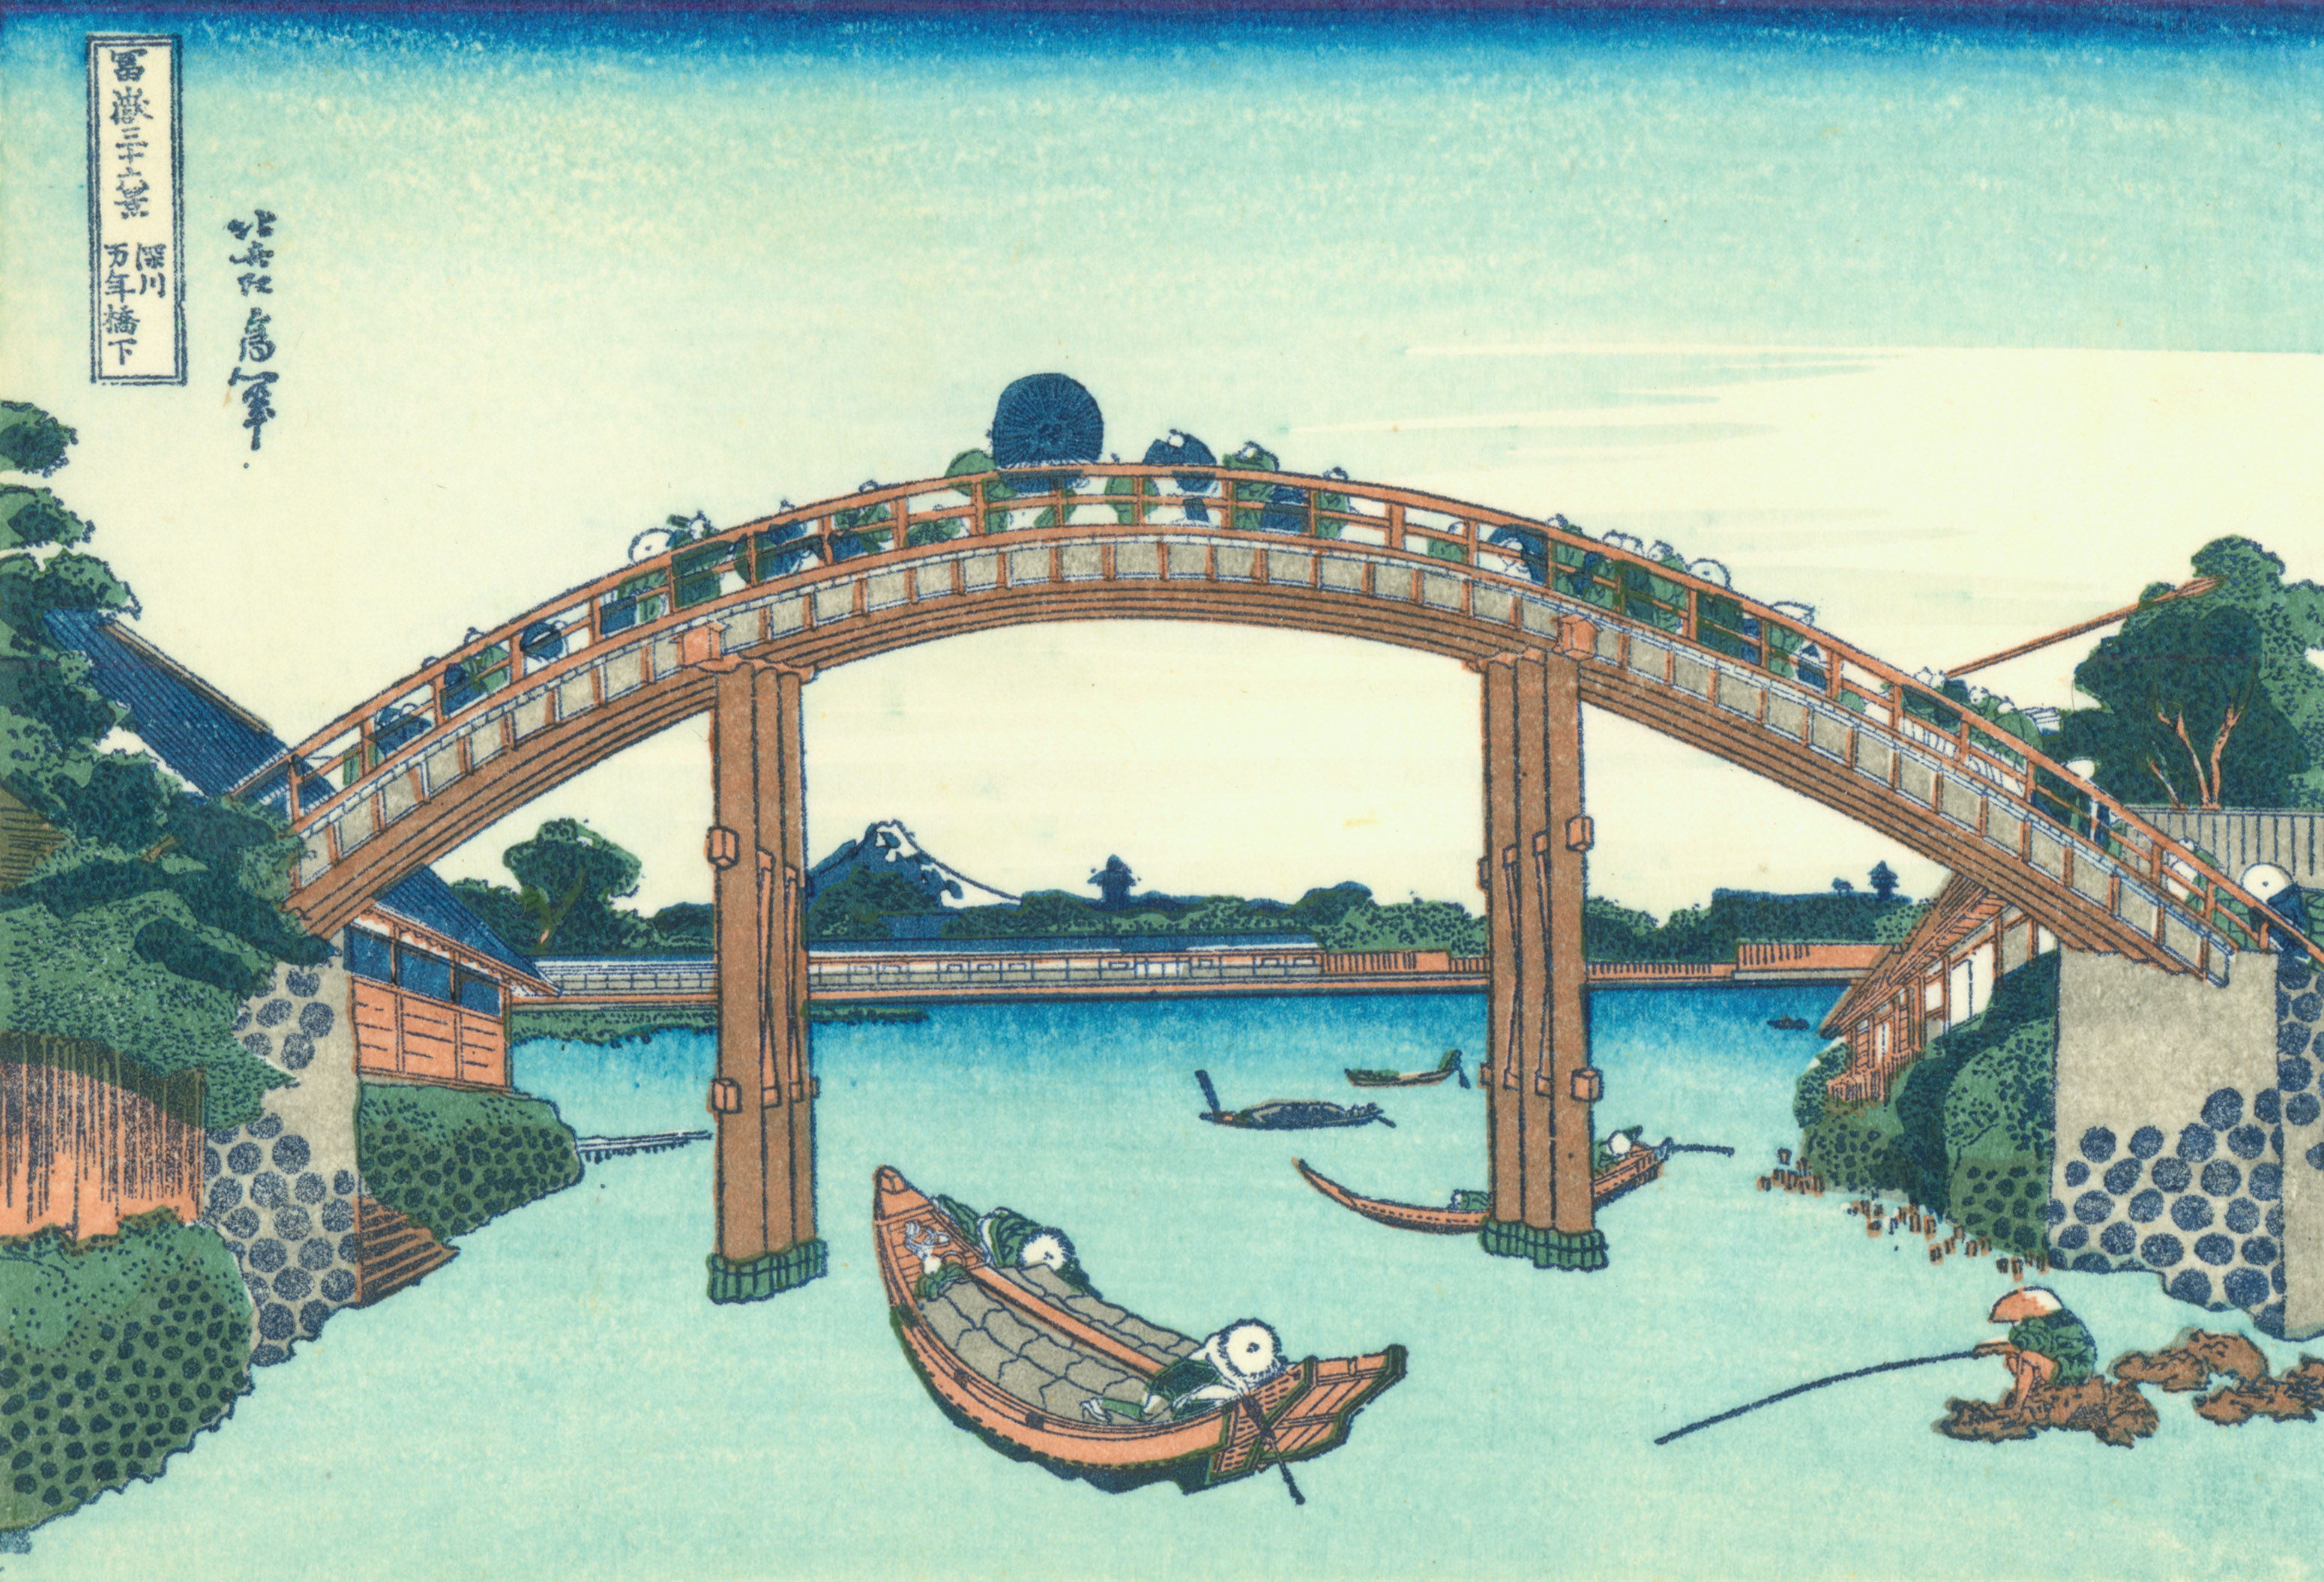 Hokusai06_mannen-bridge.jpg